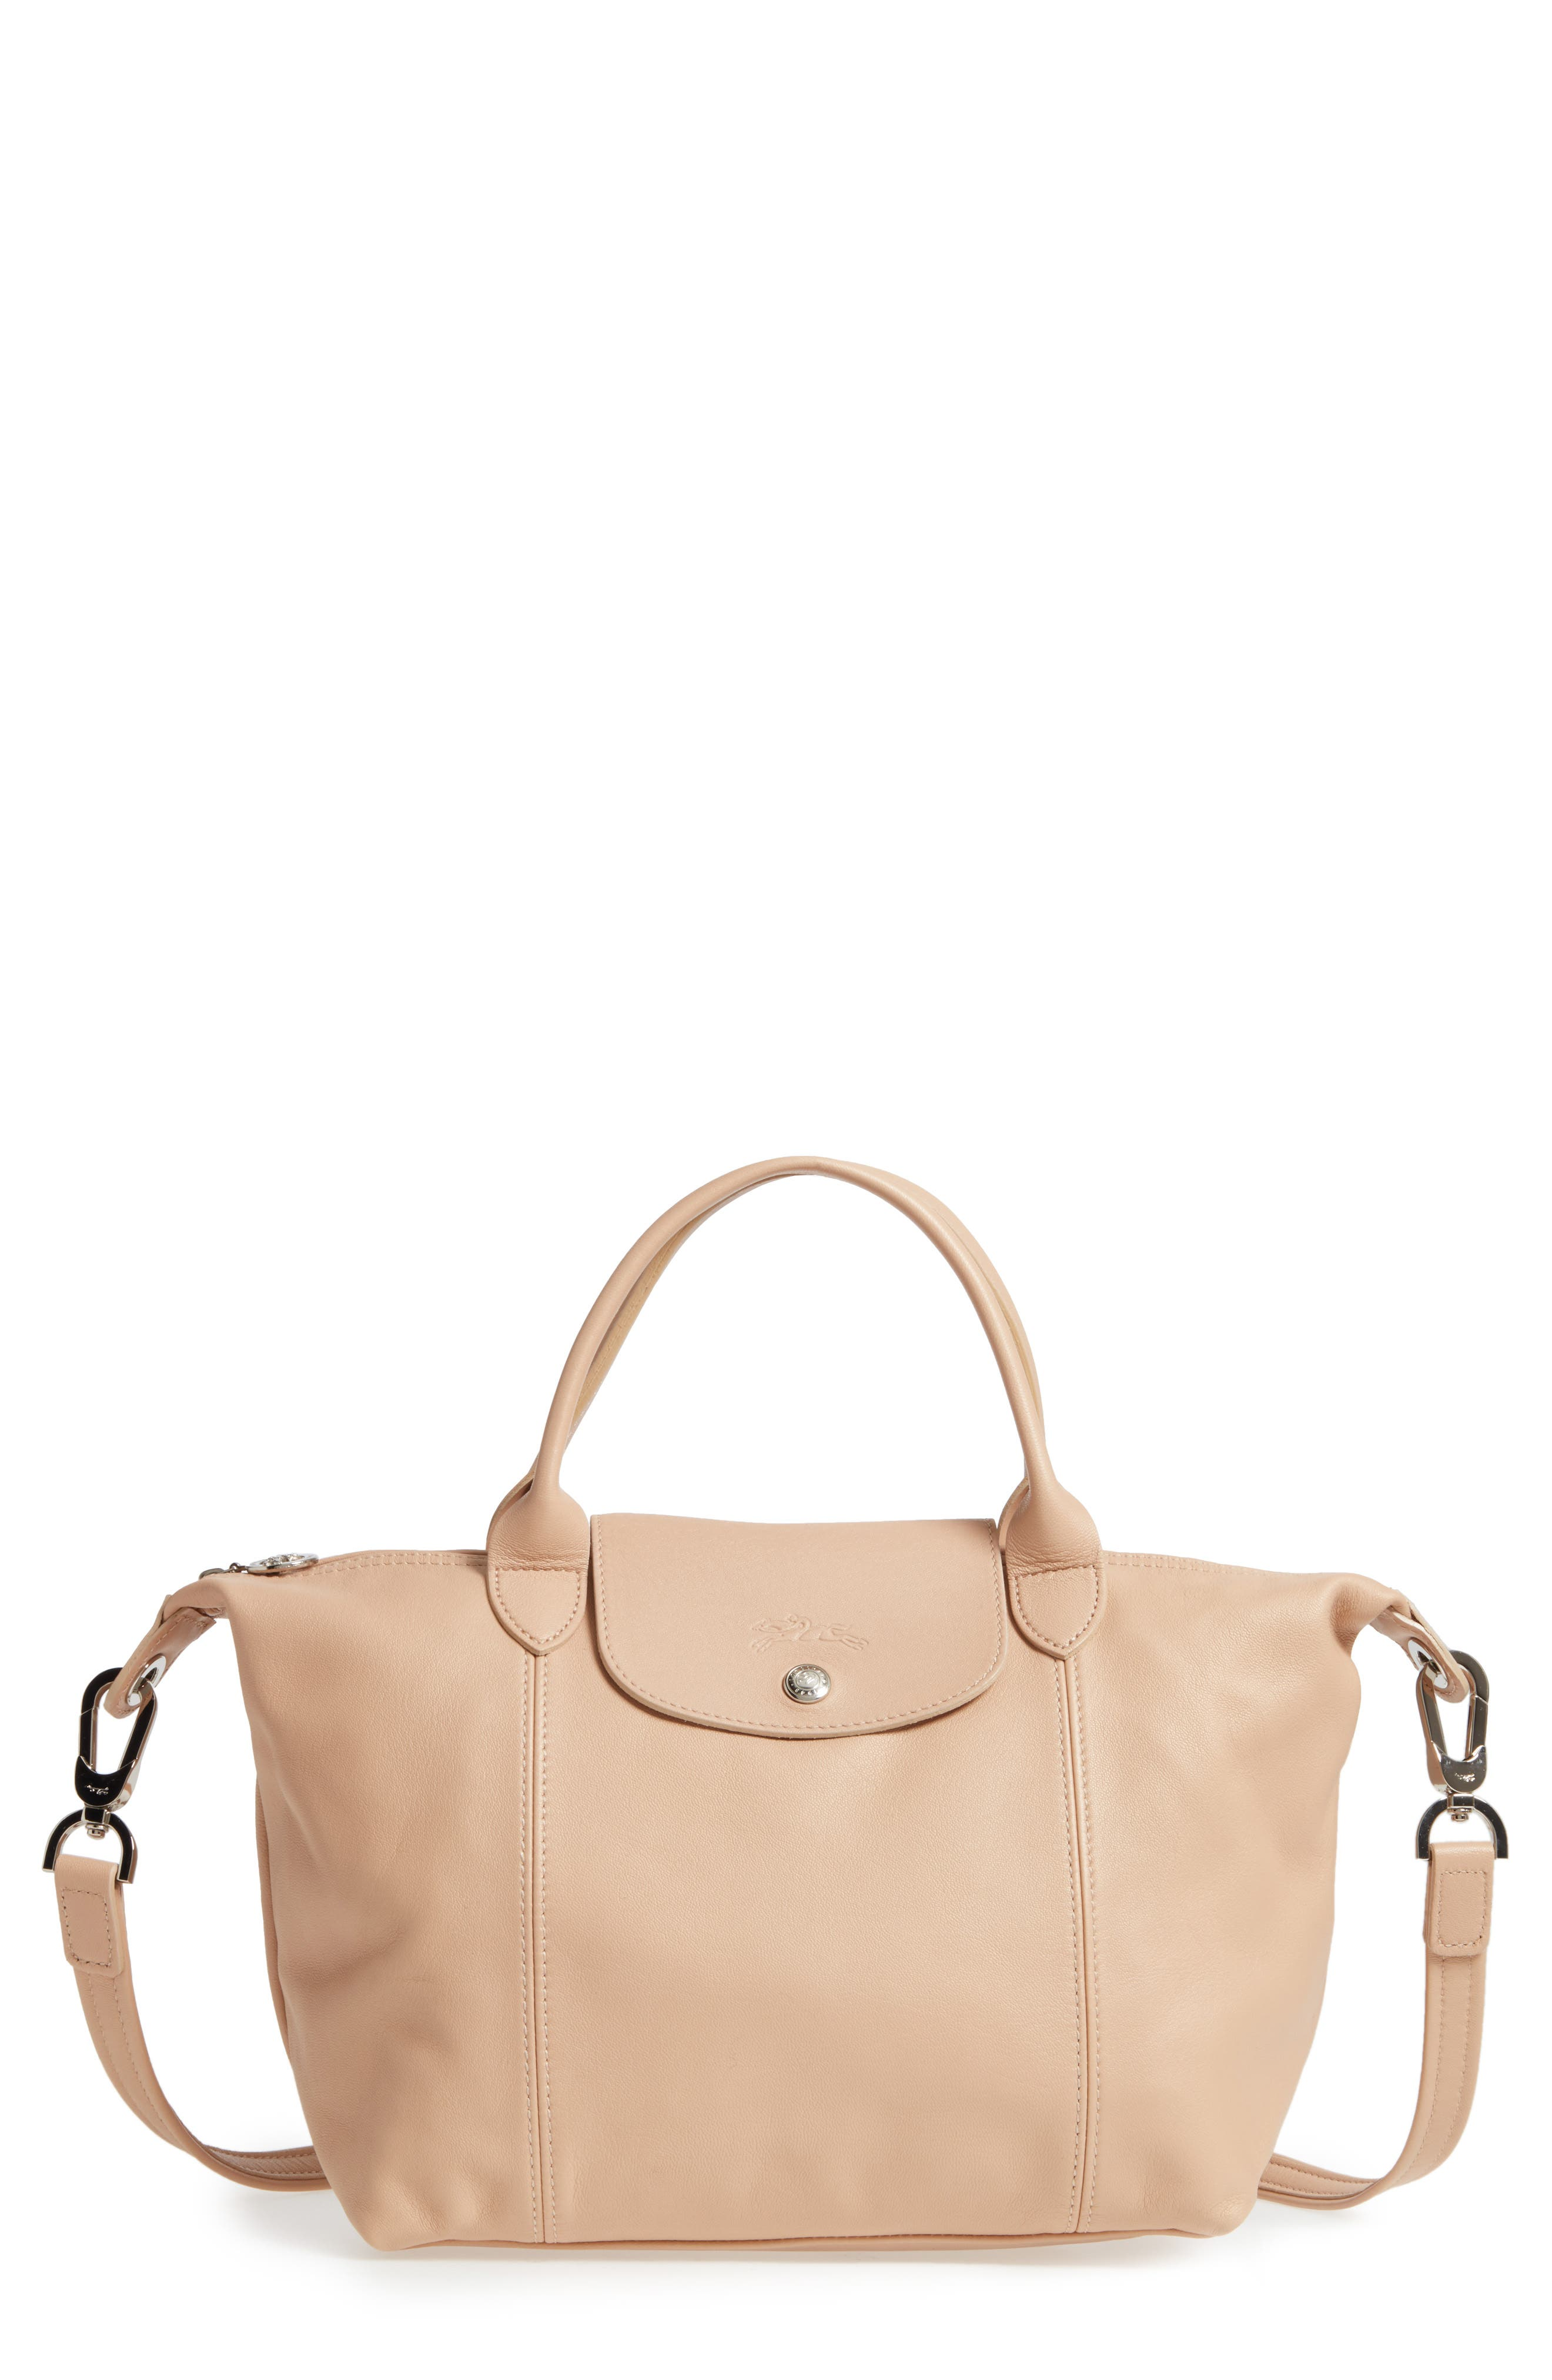 Small 'Le Pliage Cuir' Leather Top Handle Tote,                             Main thumbnail 3, color,